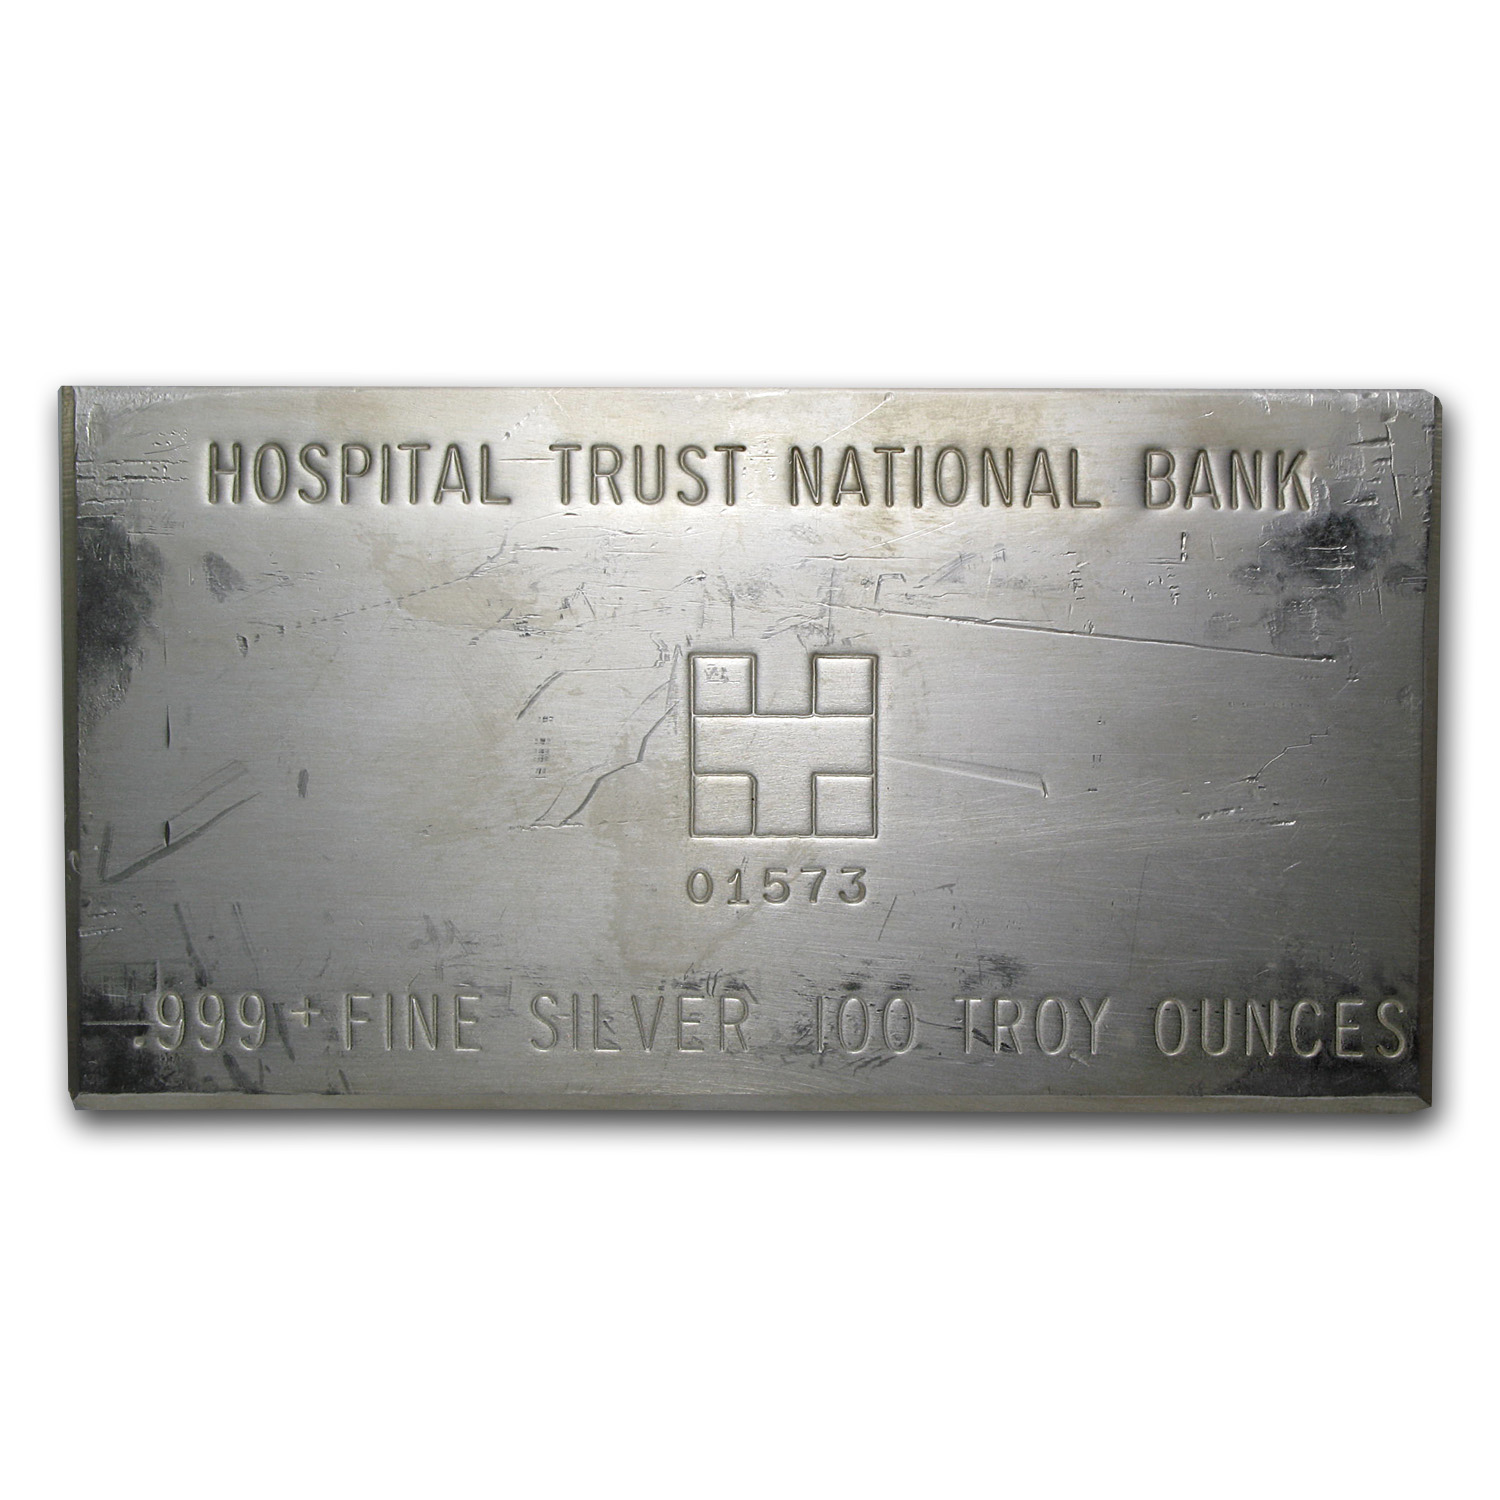 100 oz Silver Bars - Hospital Trust National Bank (Struck)